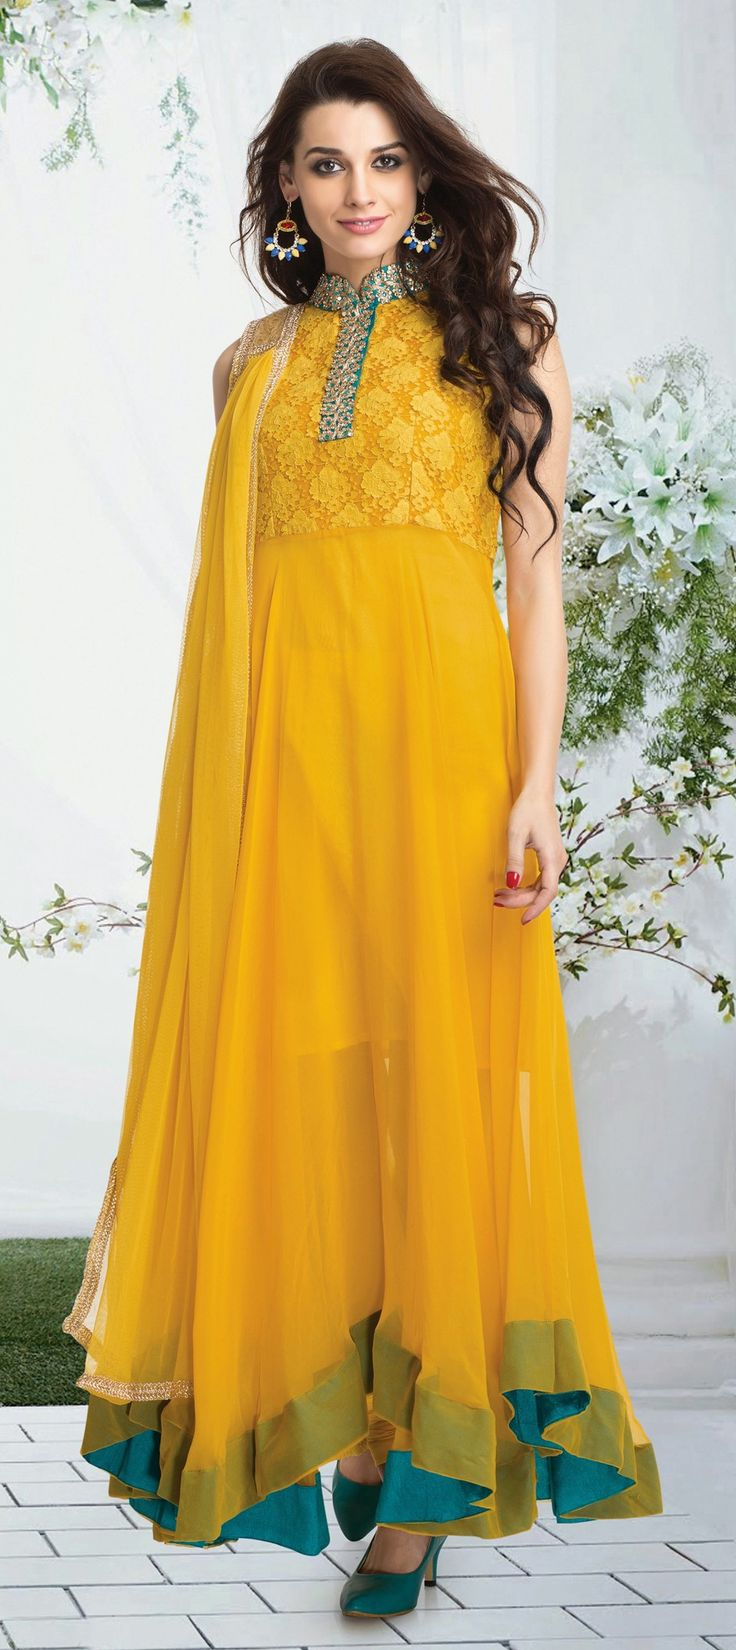 422736: Yellow color family stitched Anarkali Suits.